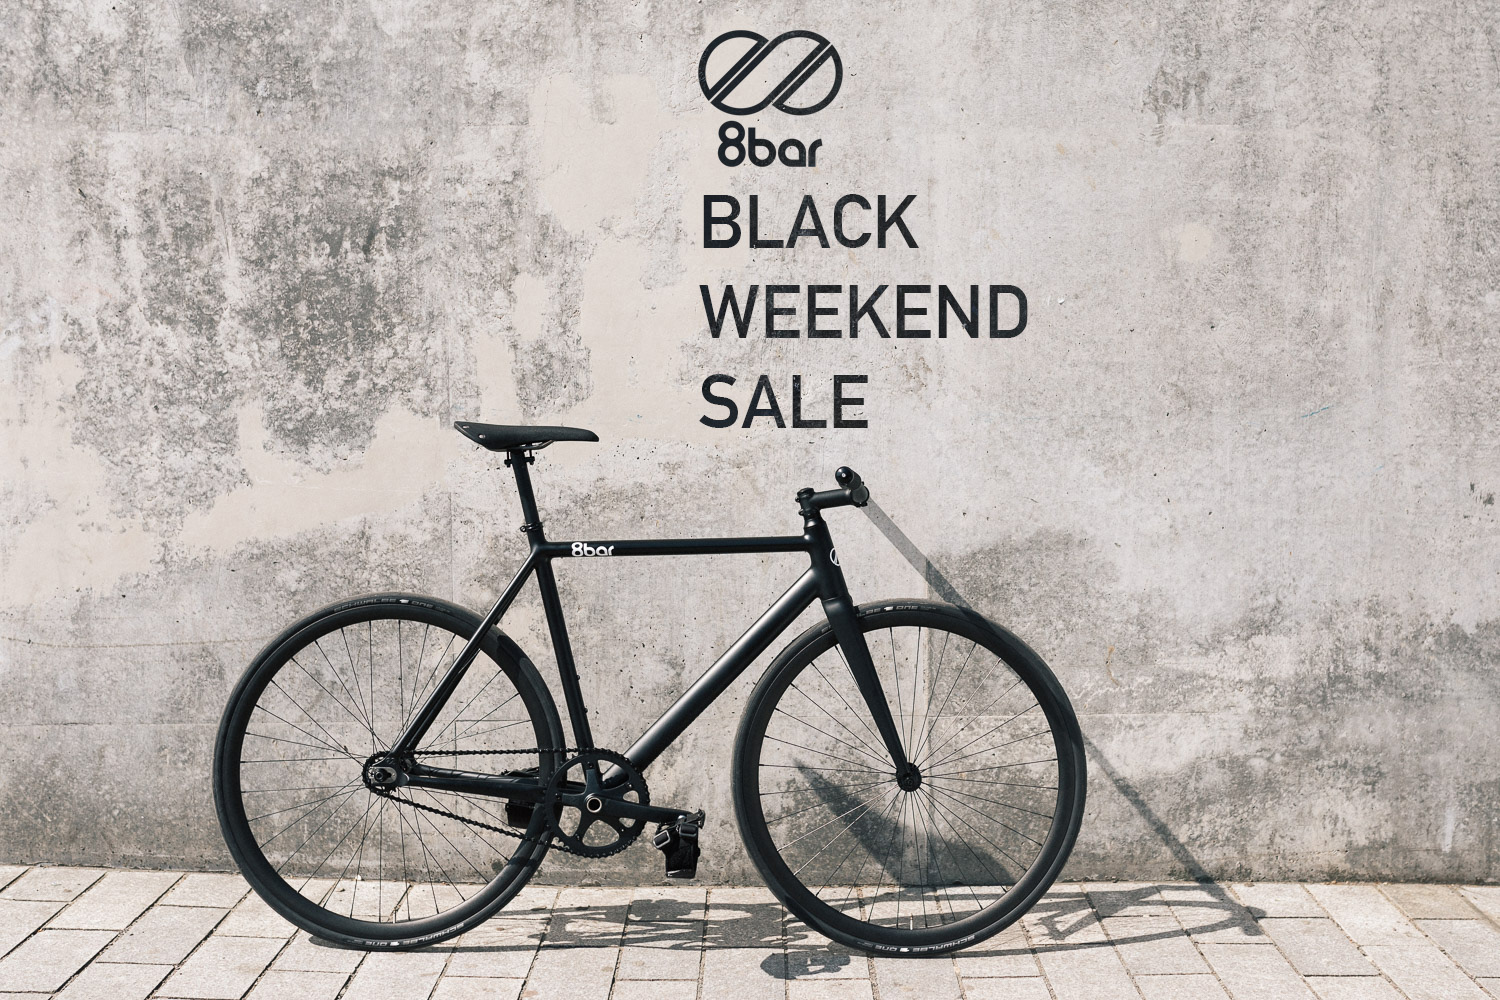 8bar black weekend sale 2018 main 1 - BLACK WEEKEND SALE